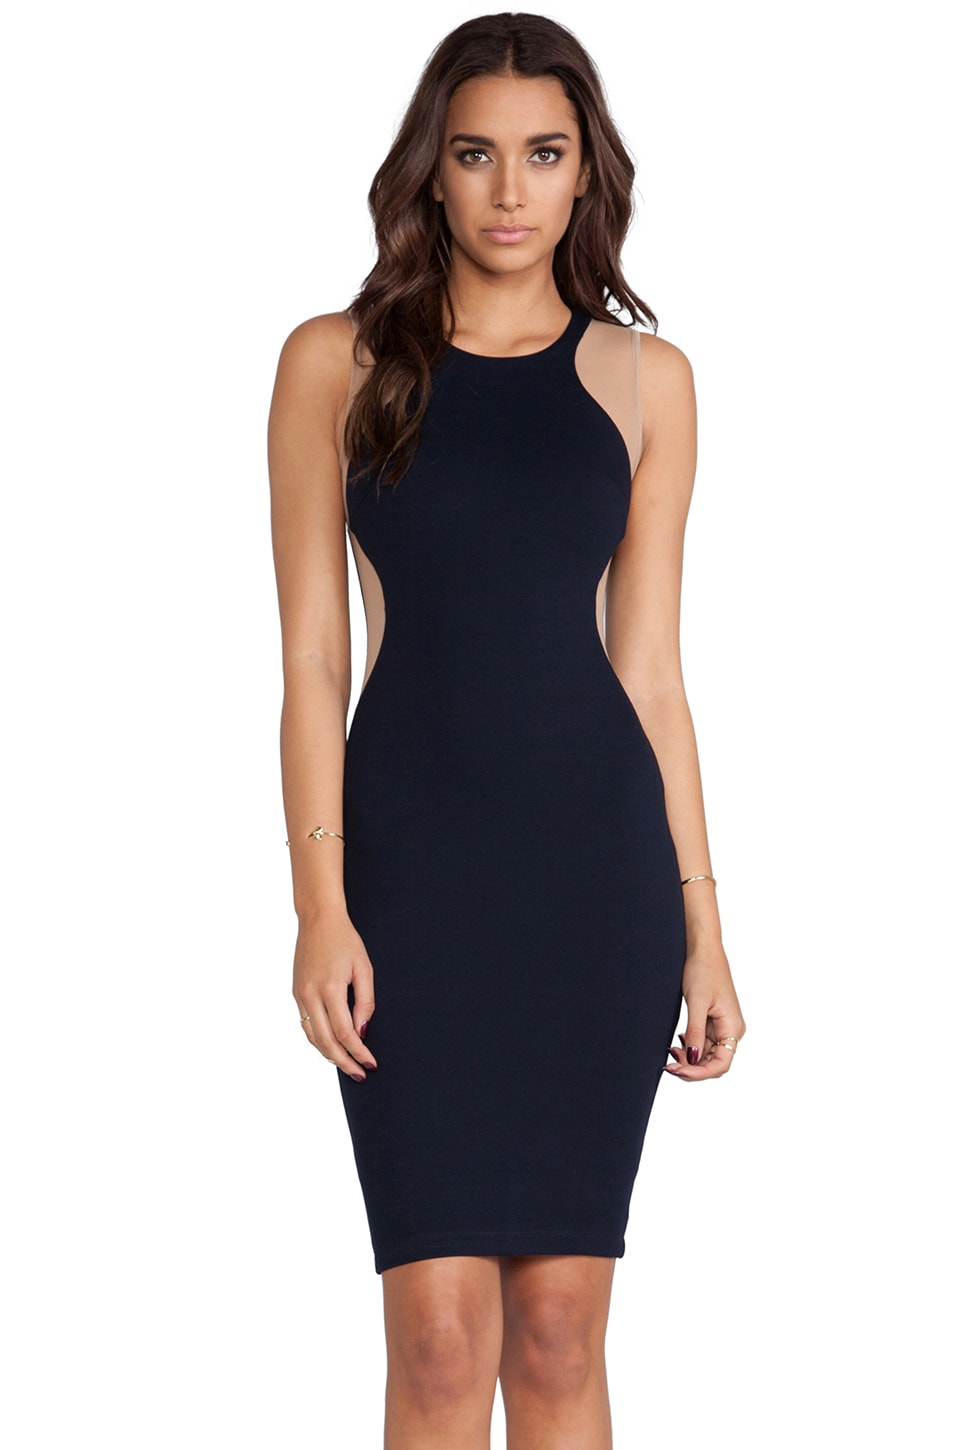 Bailey 44 Man Down Dress in Navy